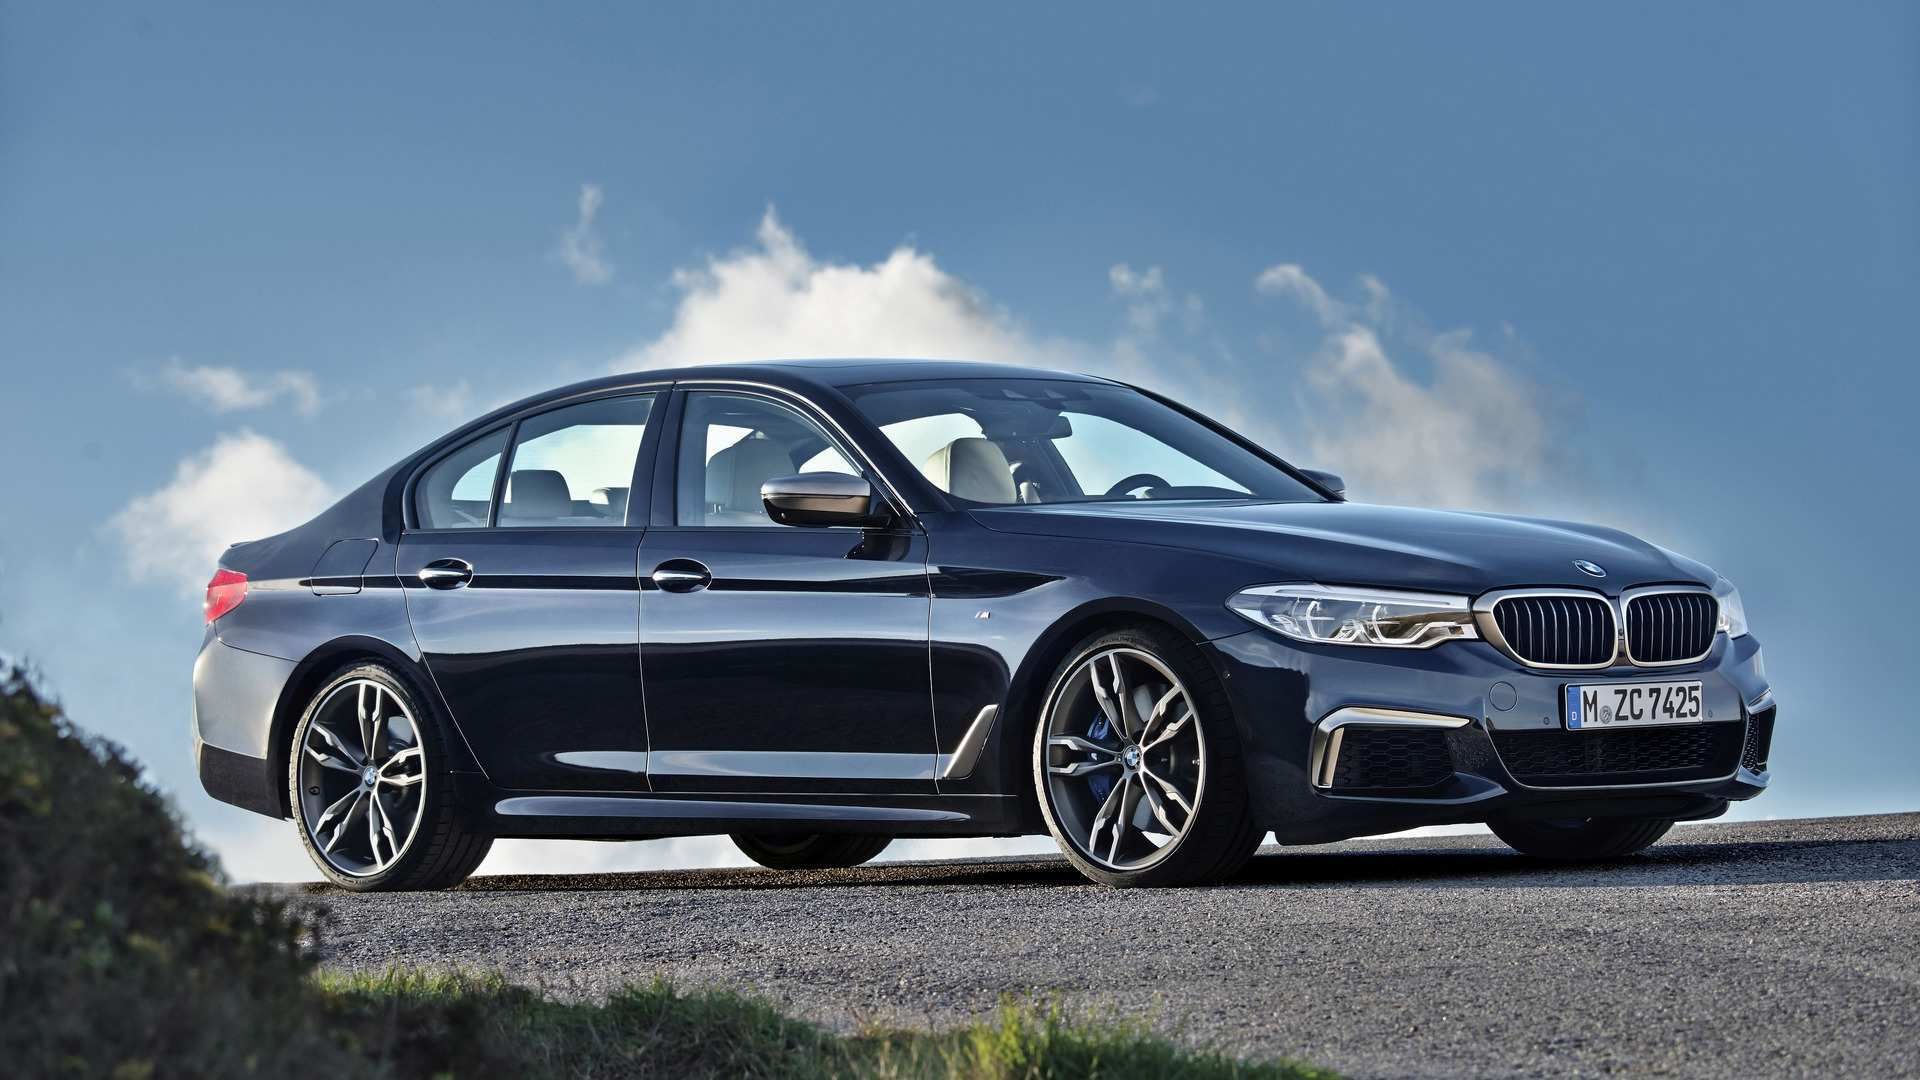 70 New 2020 BMW 550I Price and Review with 2020 BMW 550I